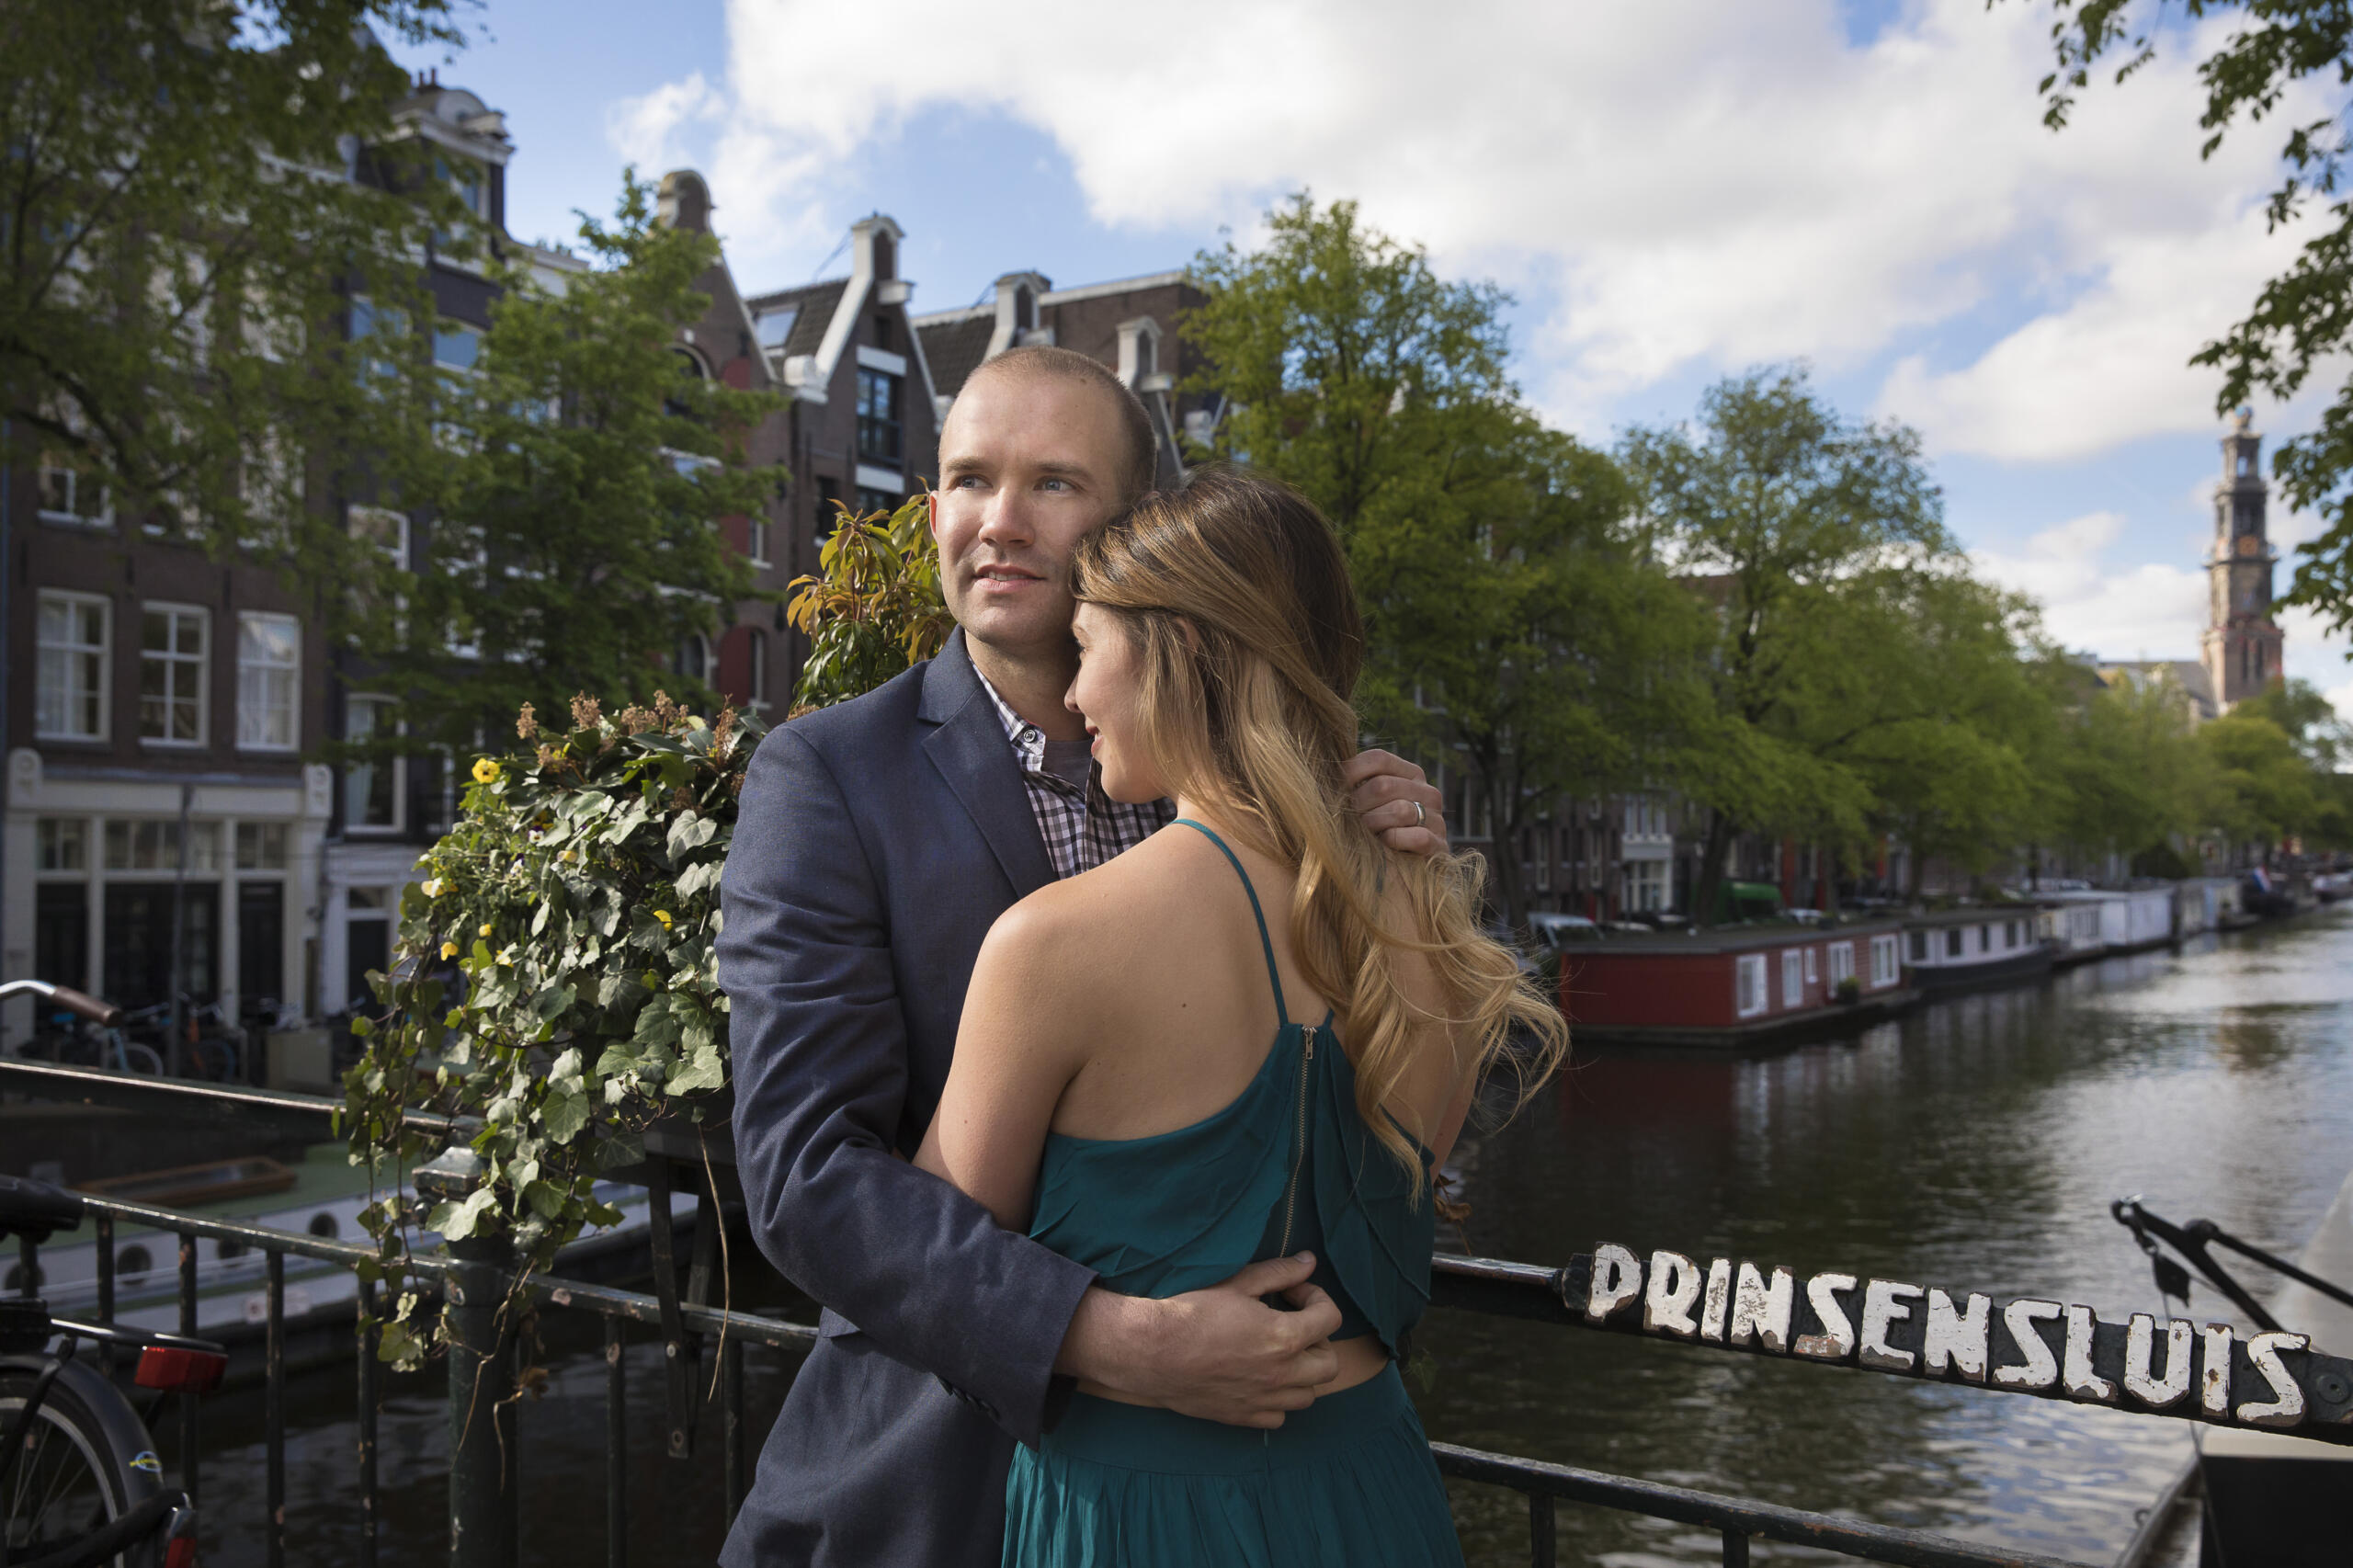 loveshoot couple photoshoot portrait spots amsterdam